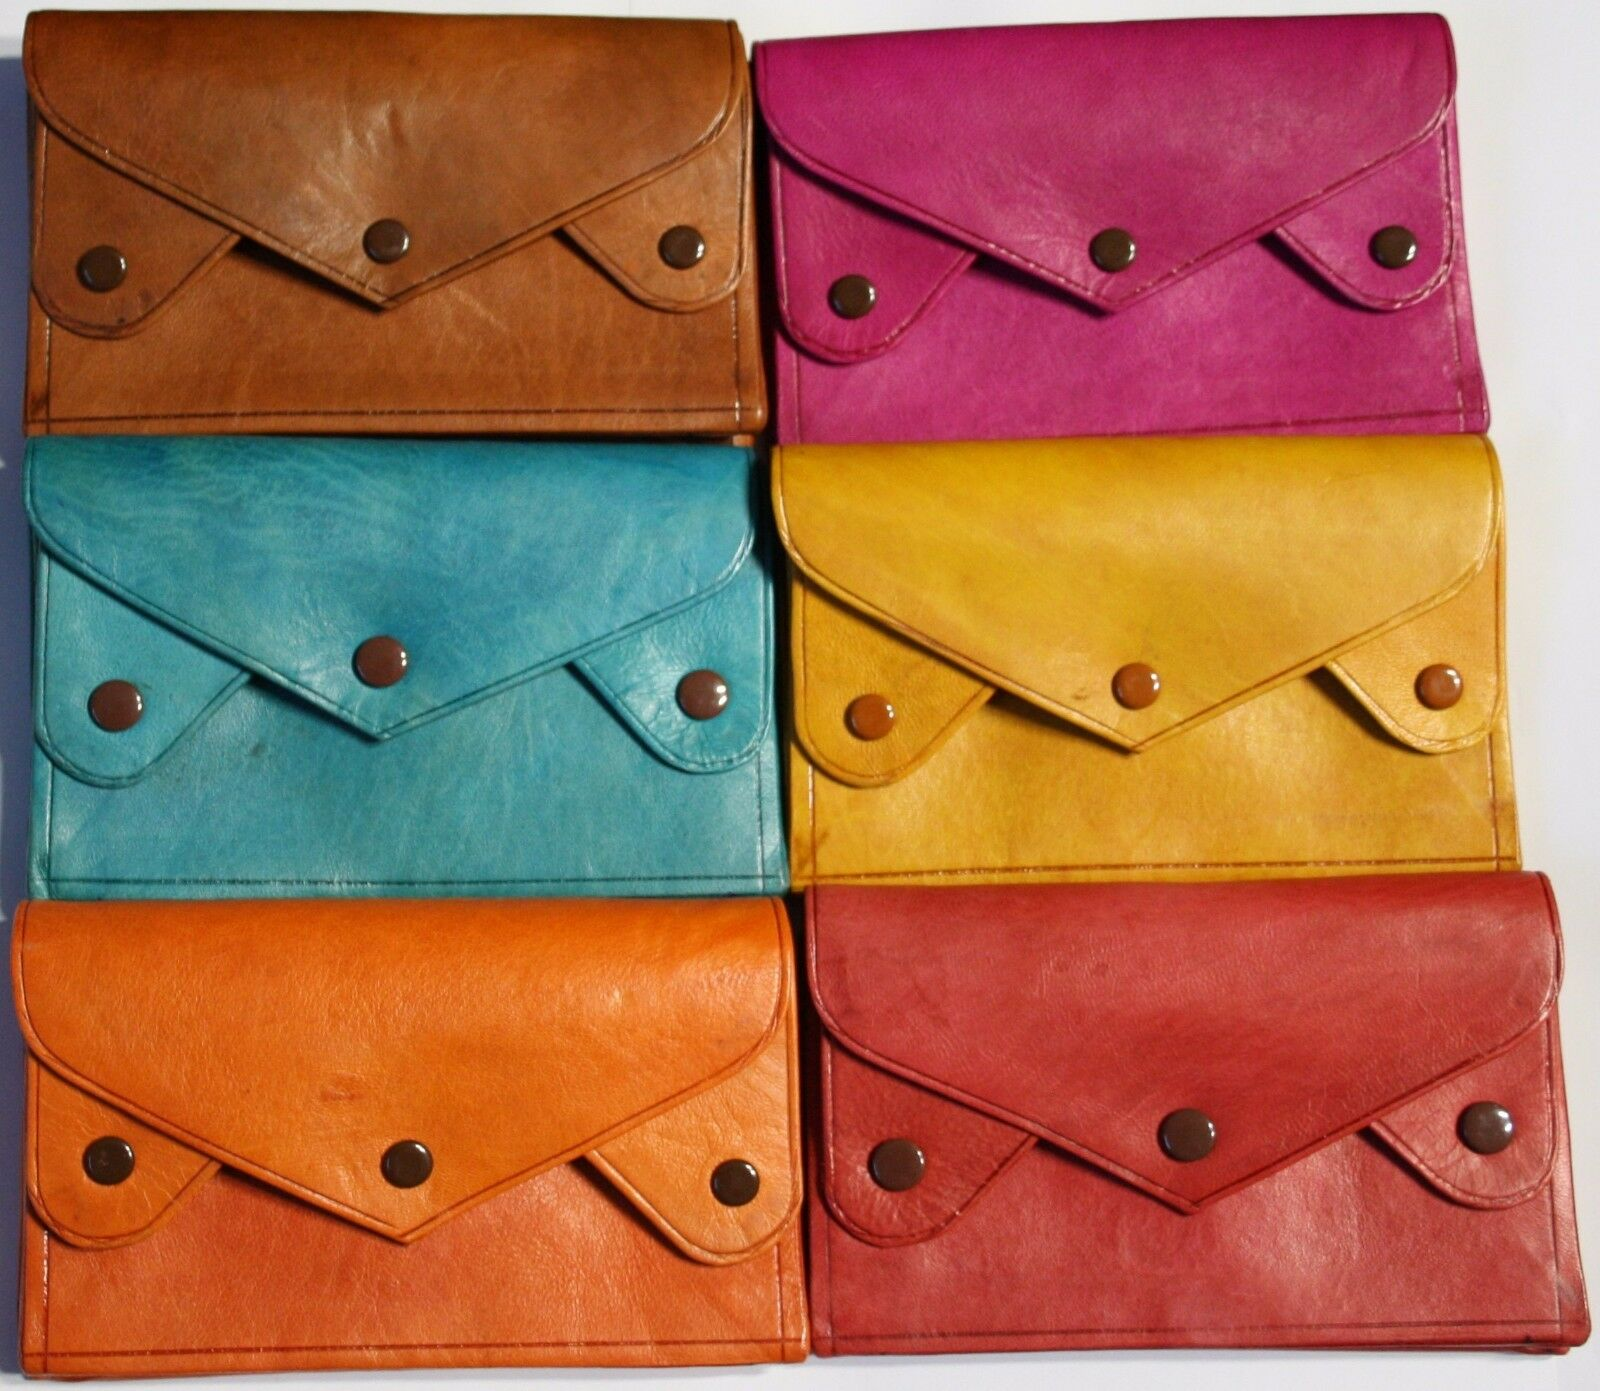 Handmade high quality large coloured leather wallet, with 4 compartments.